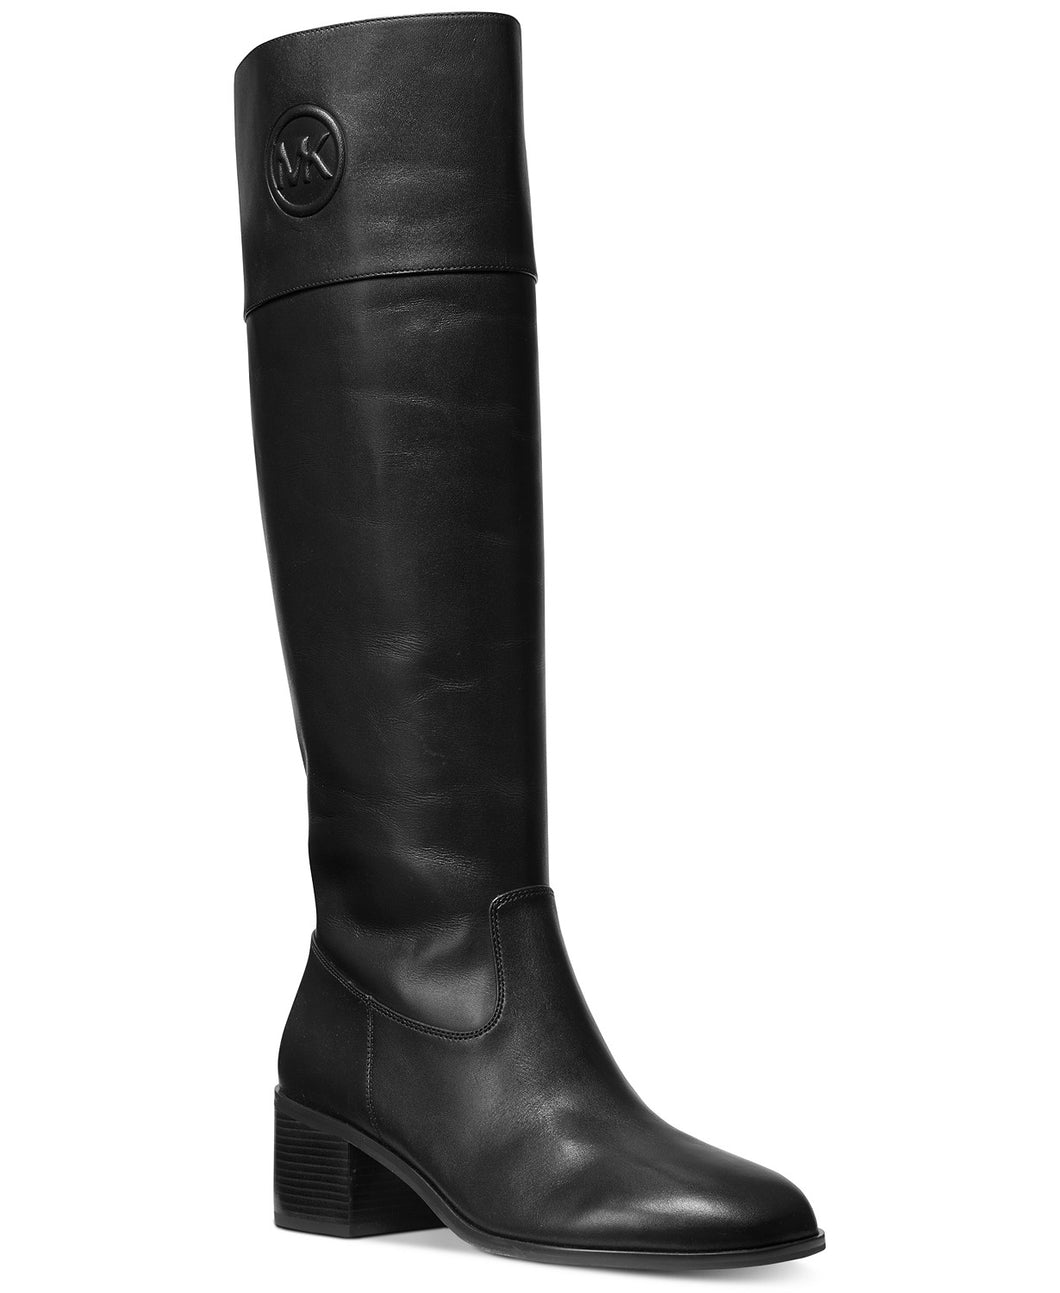 MICHAEL KORS - Dylyn Black Leather High Boots